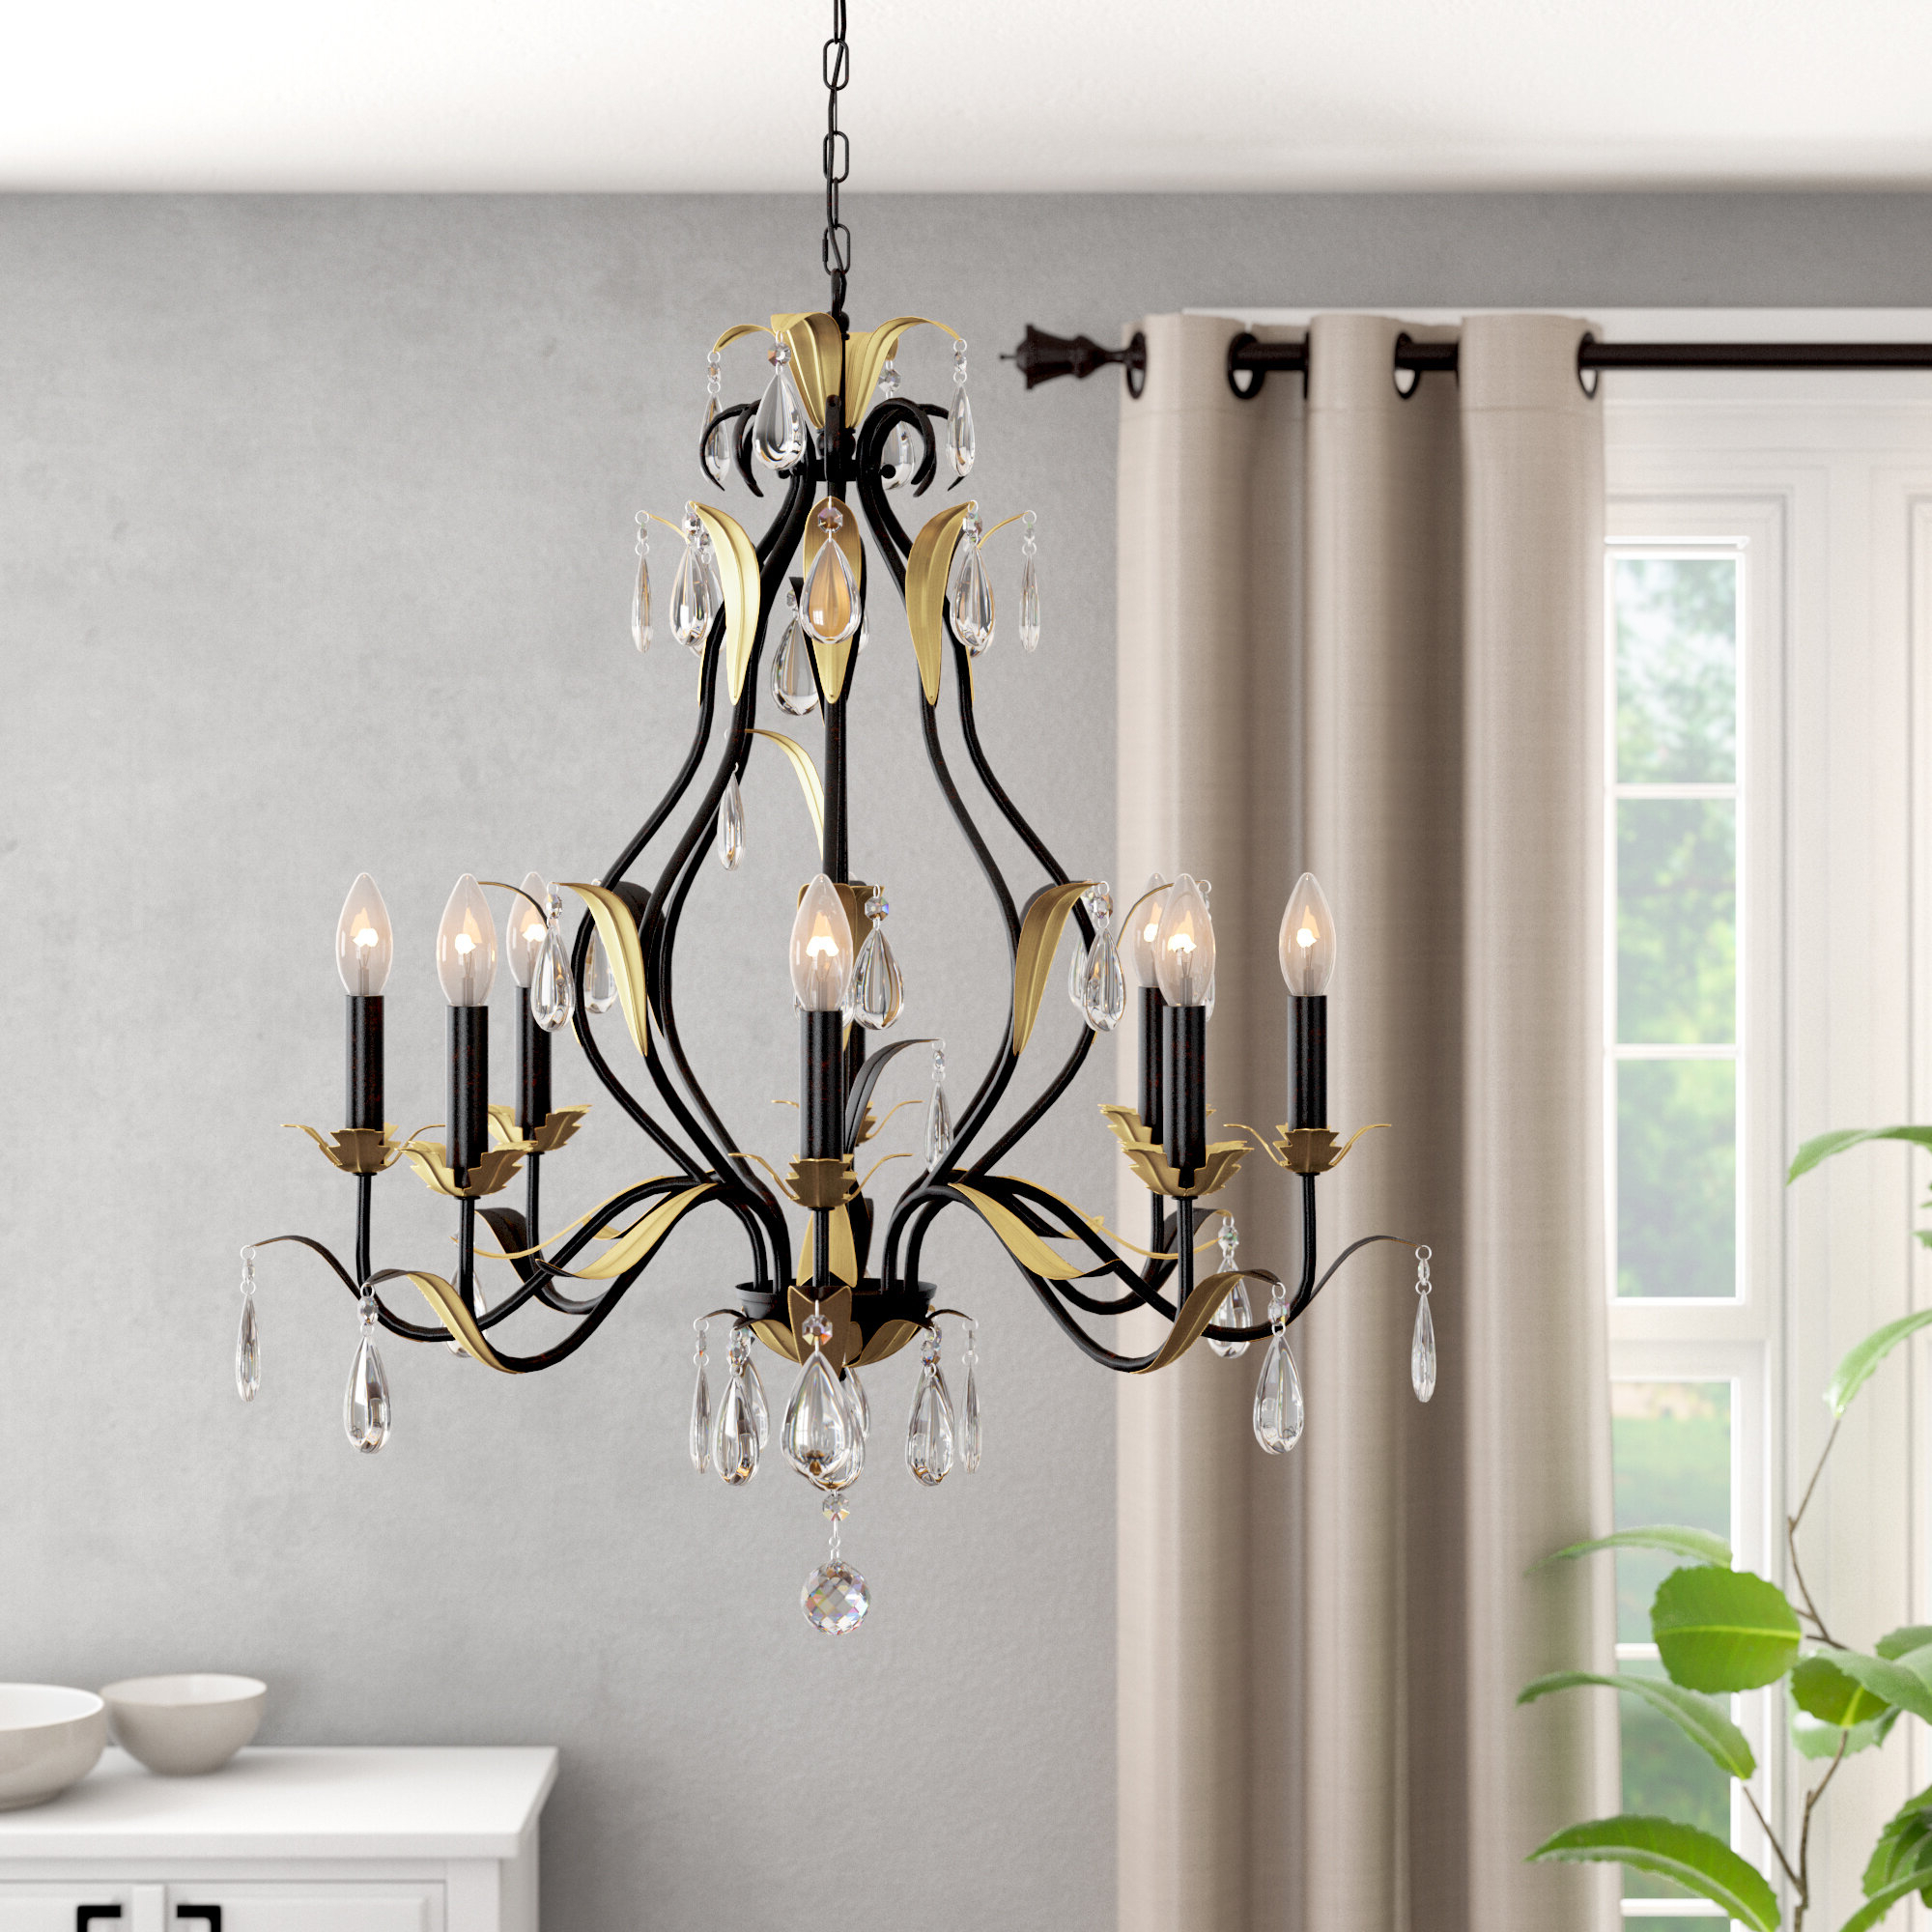 Aspendale 8 Light Candle Style Chandelier With Regard To Most Recently Released Warner Robins 3 Light Lantern Pendants (Gallery 15 of 20)